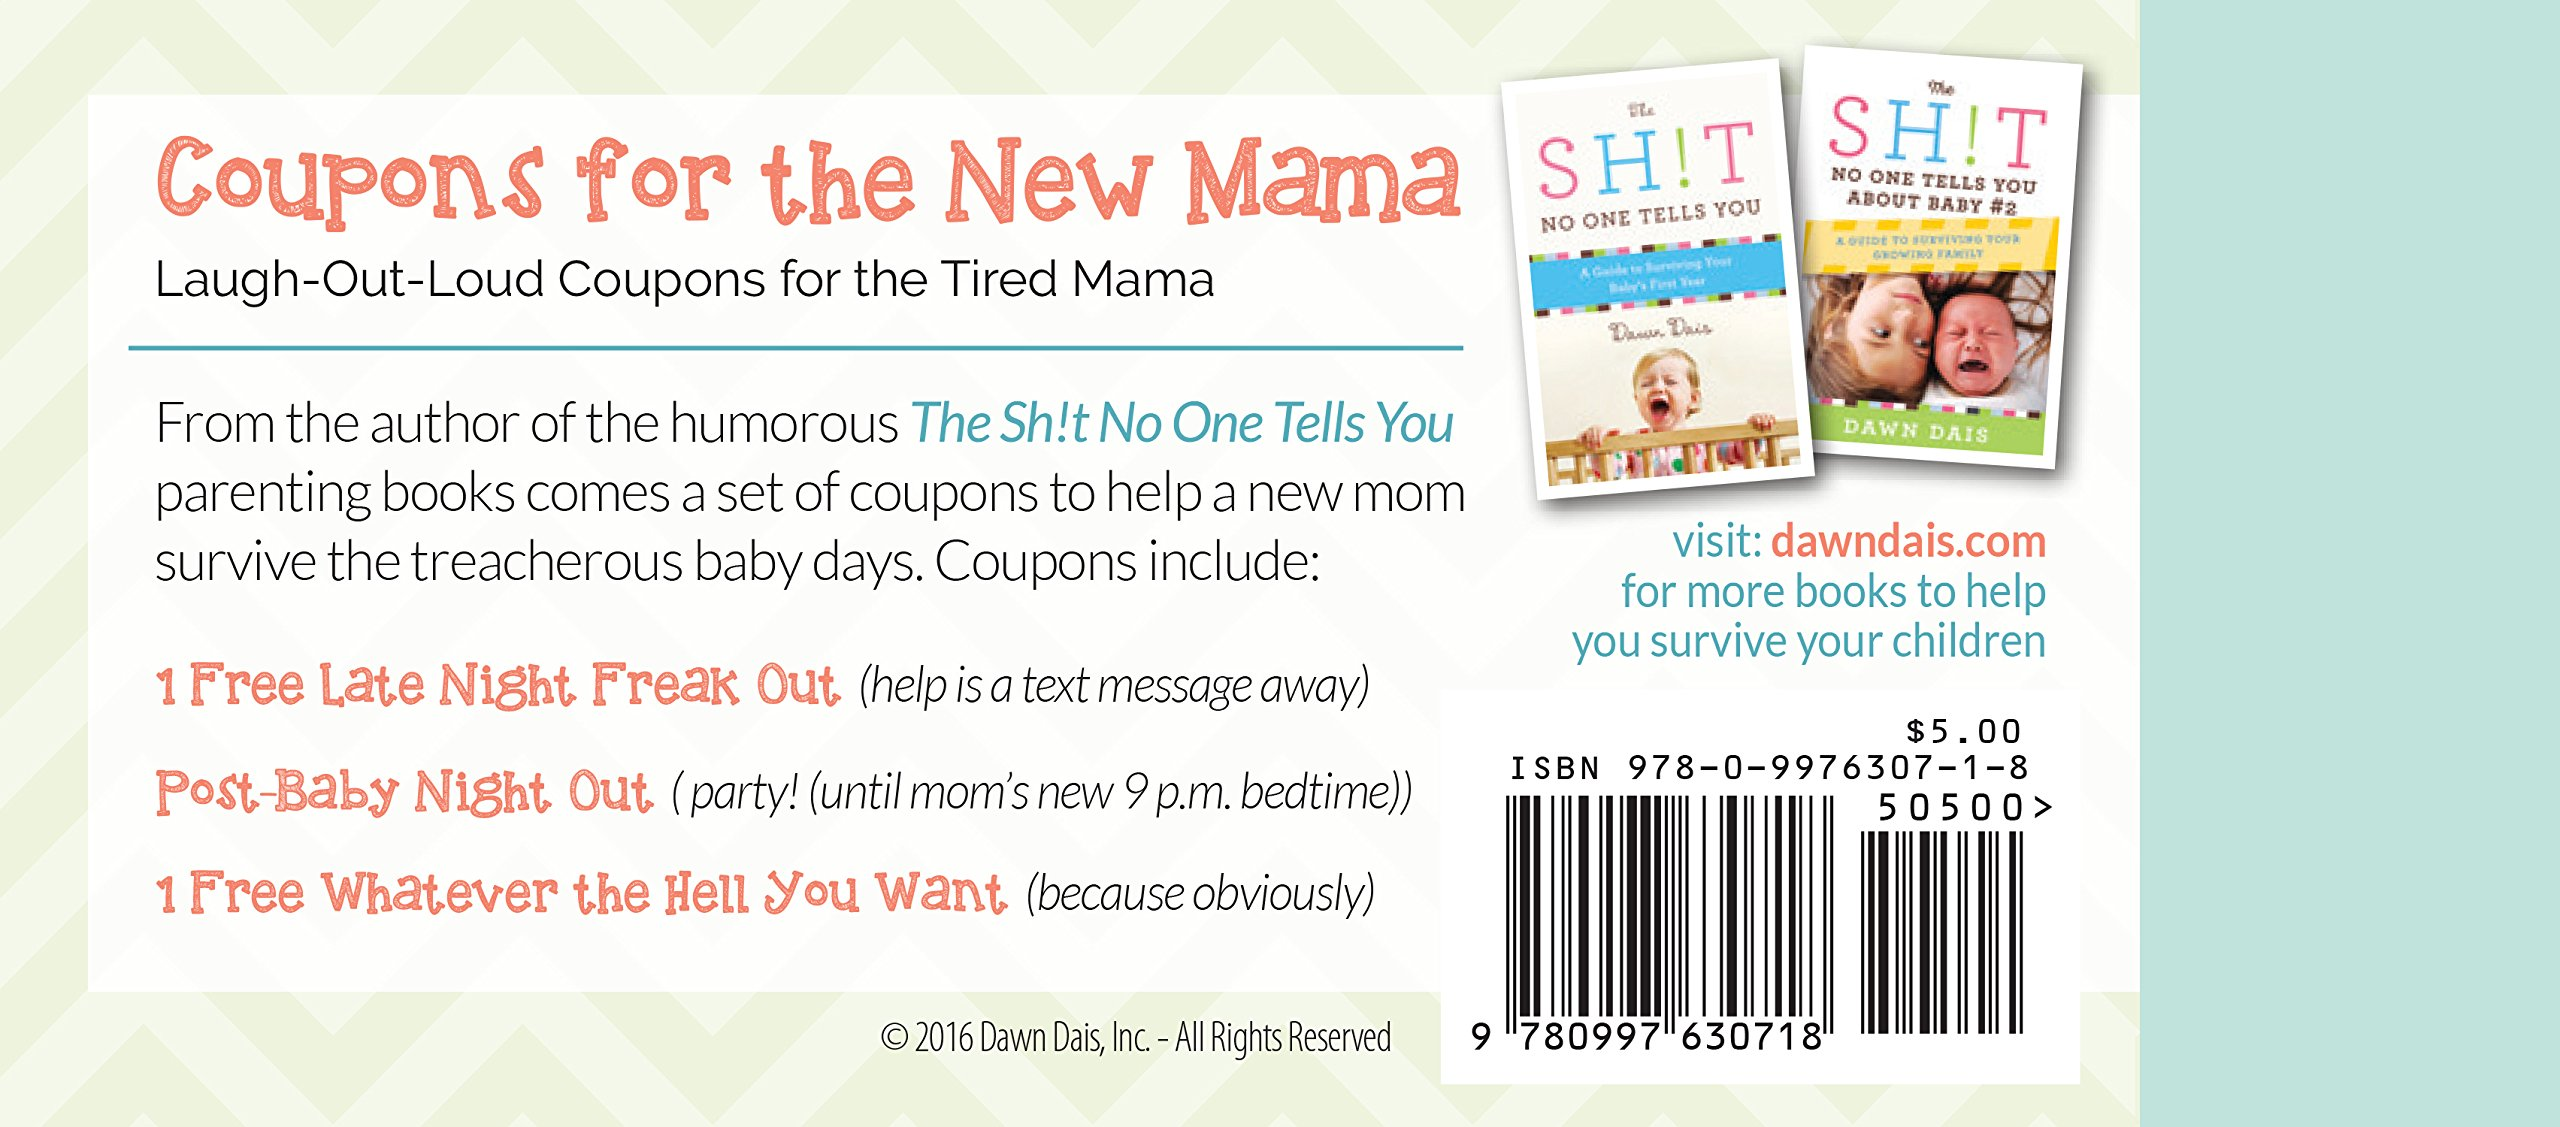 Coupons for the New Mama - From Your BFF: Dawn Dais